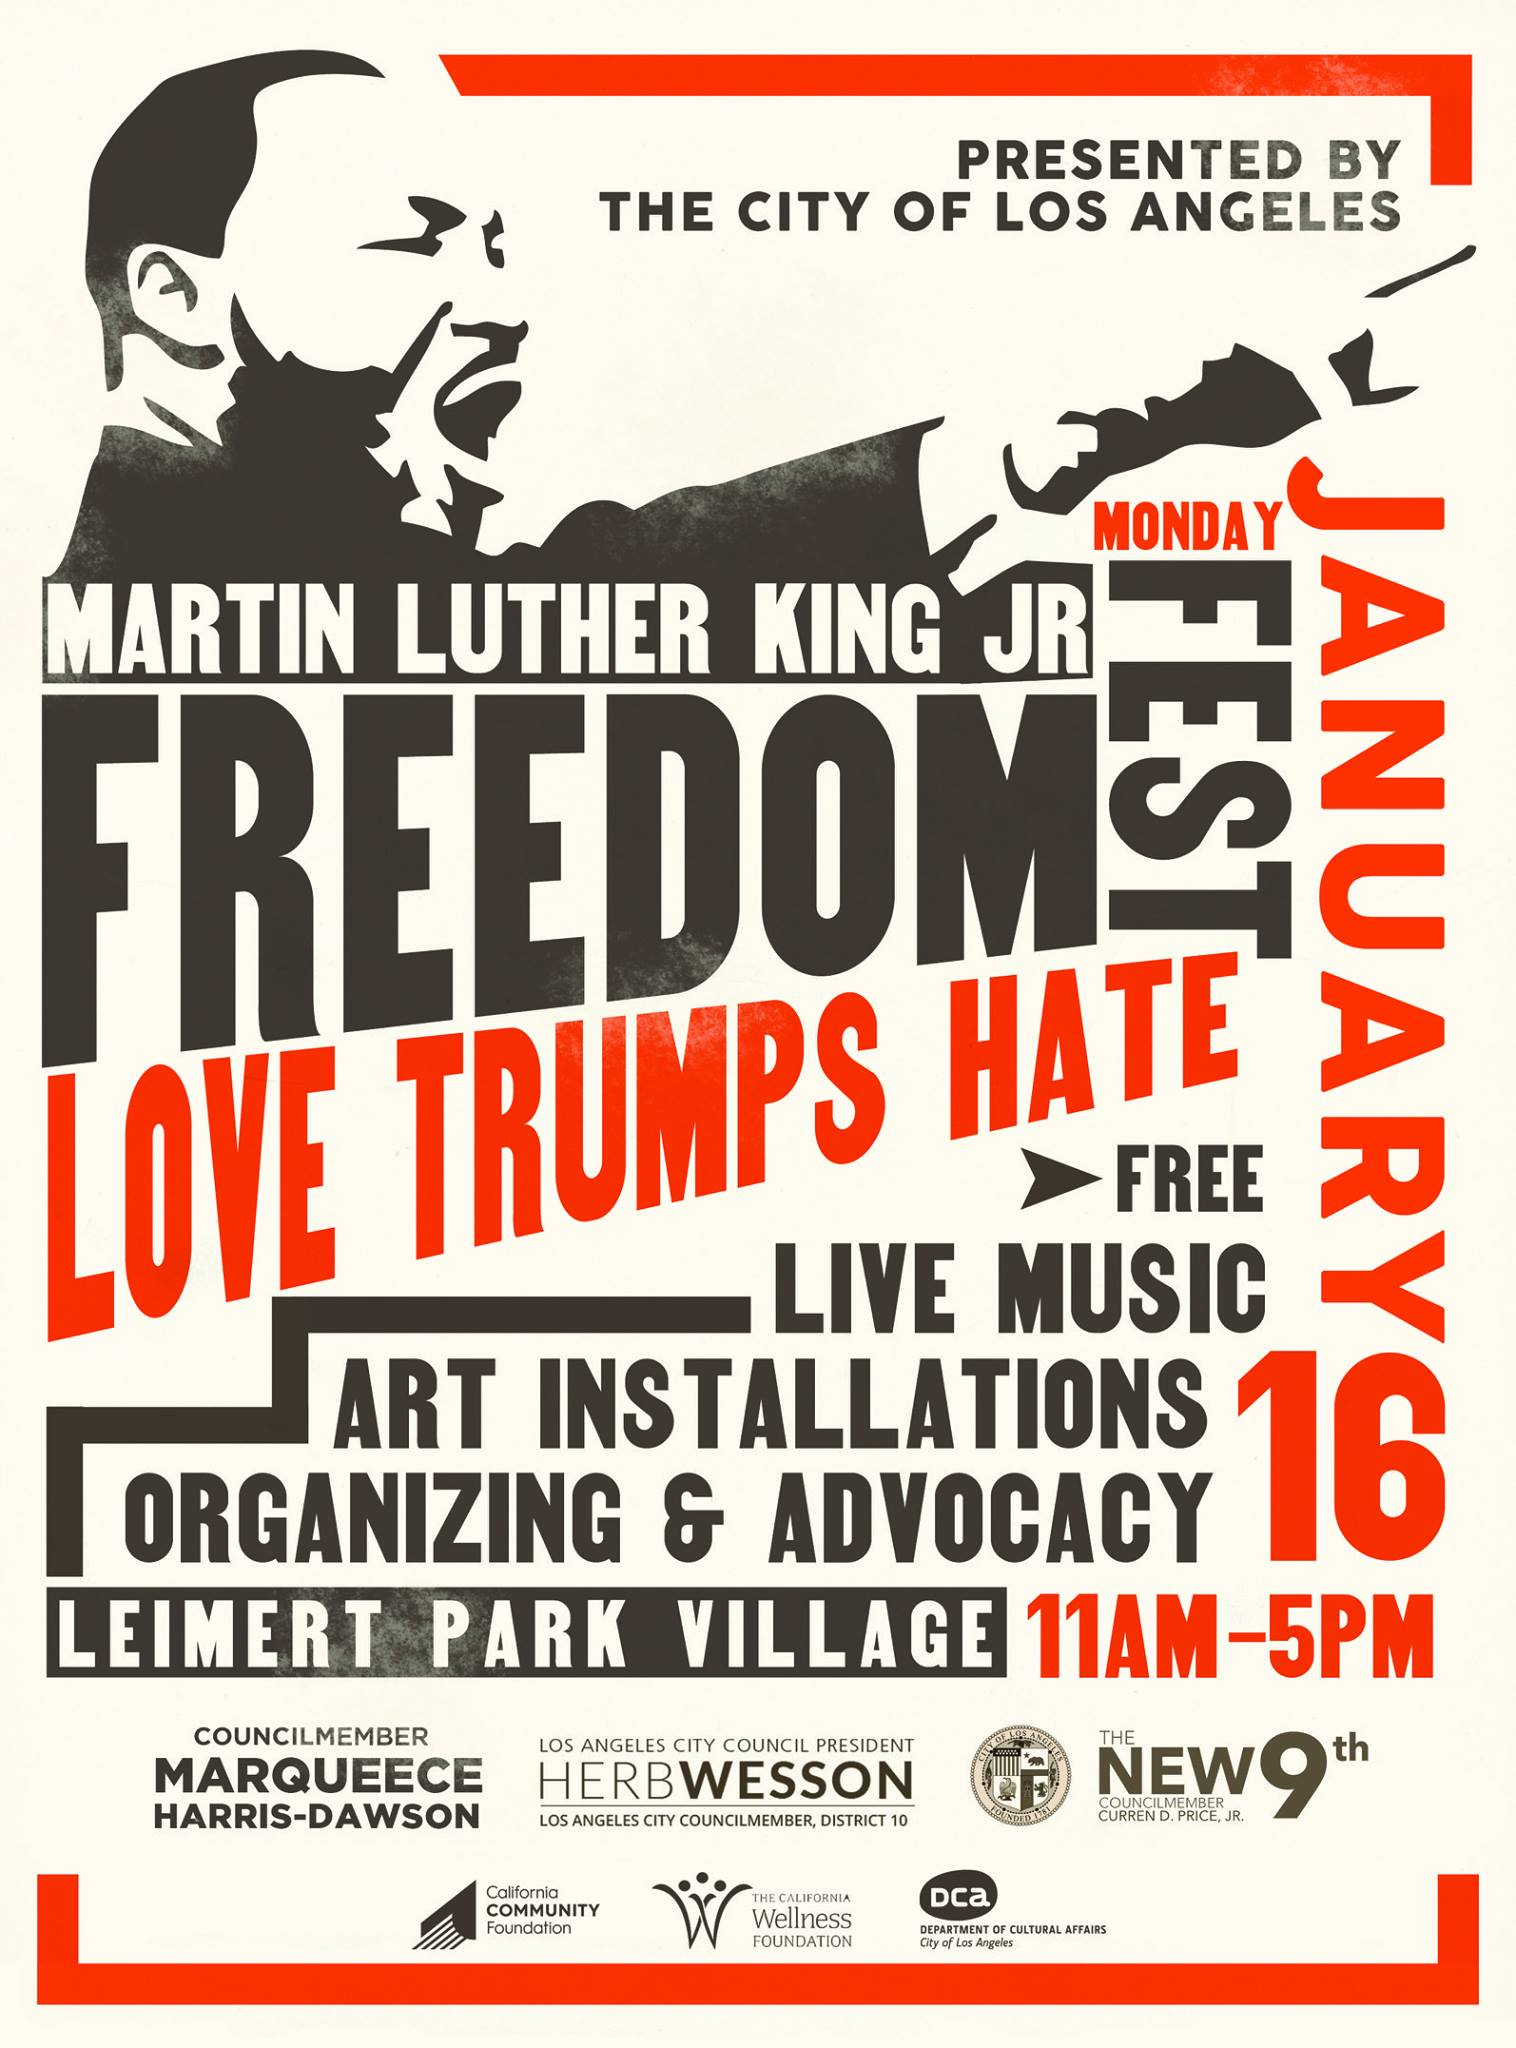 Celebrate Martin Luther King Jr. Day in LA with a Parade, Festivals and Free Cake!